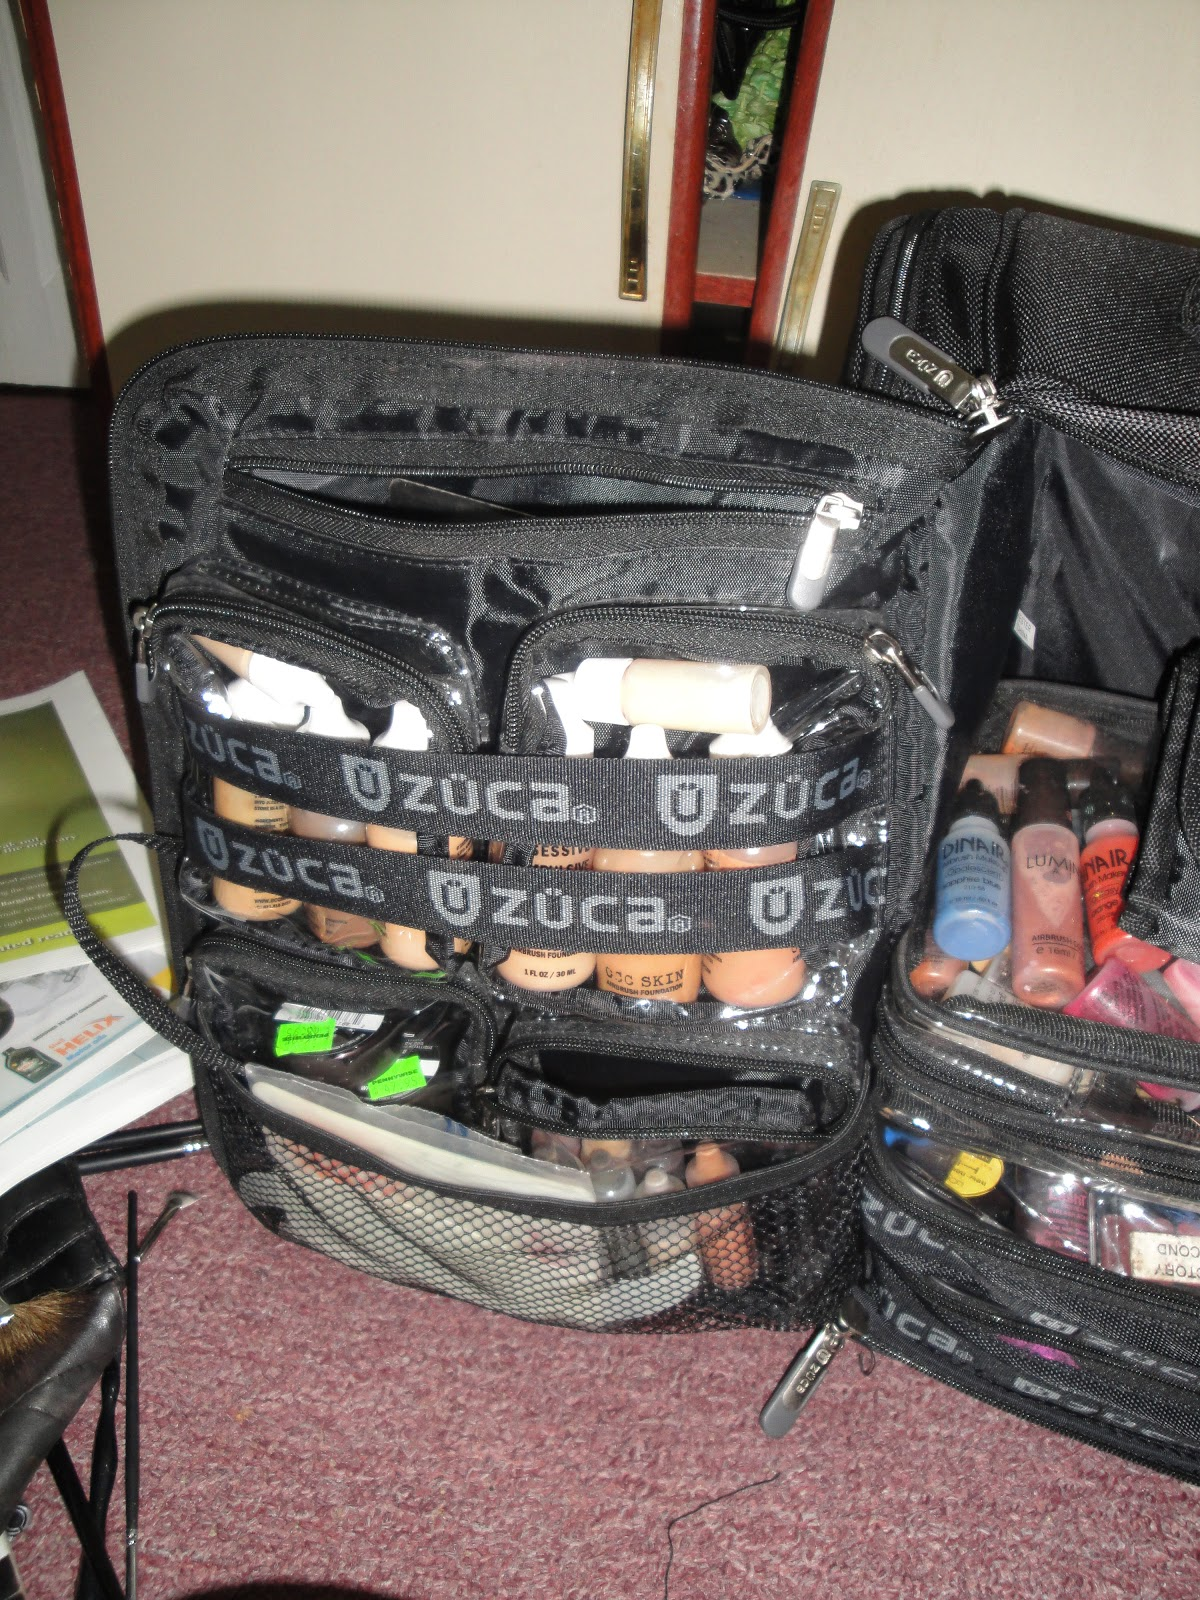 ... - Musings of a Makeup Artist: My New Zuca Makeup Case - Backpack Pro